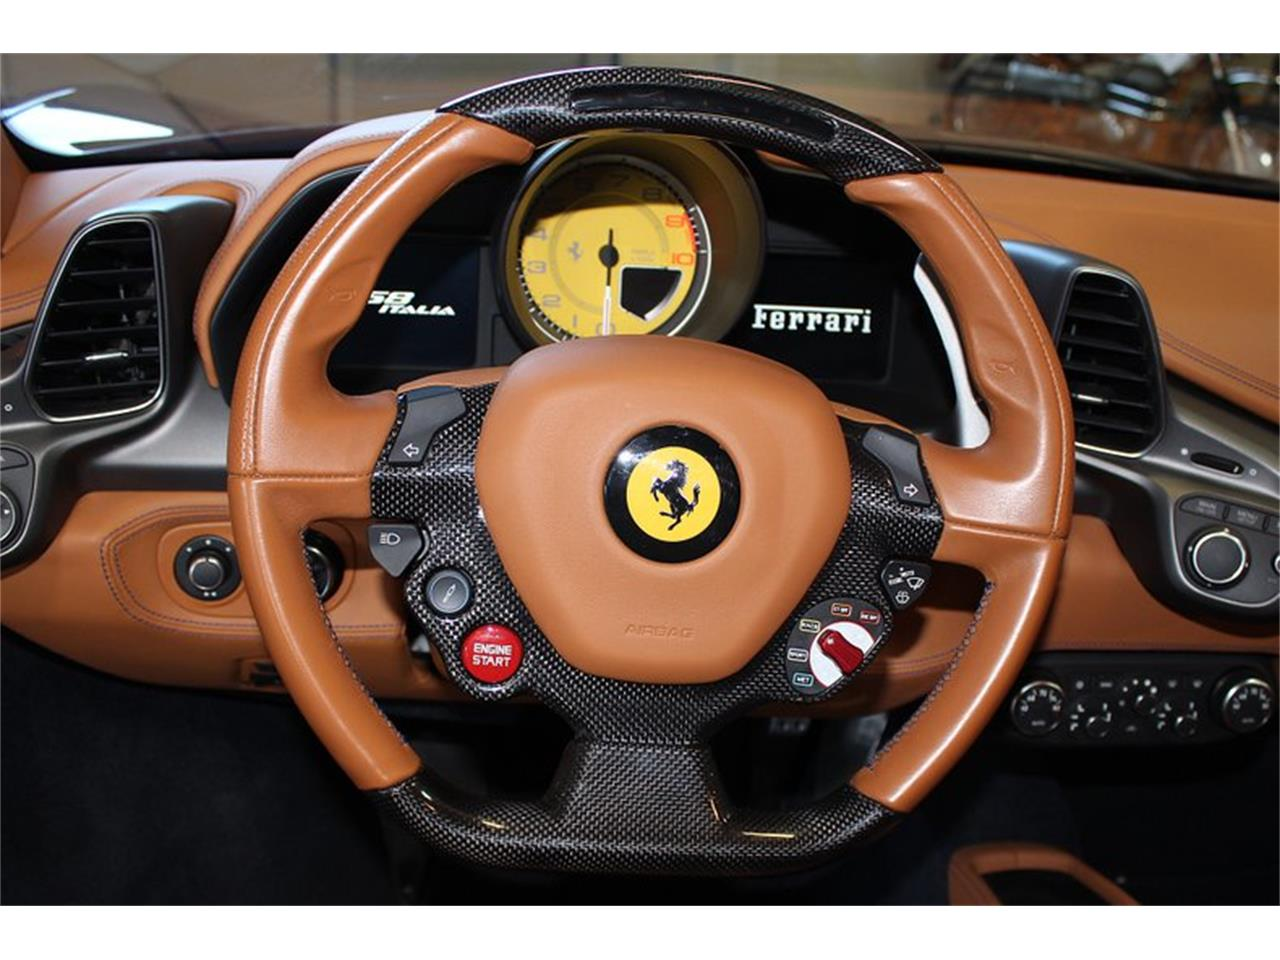 2013 Ferrari 458 (CC-1219297) for sale in San Carlos, California